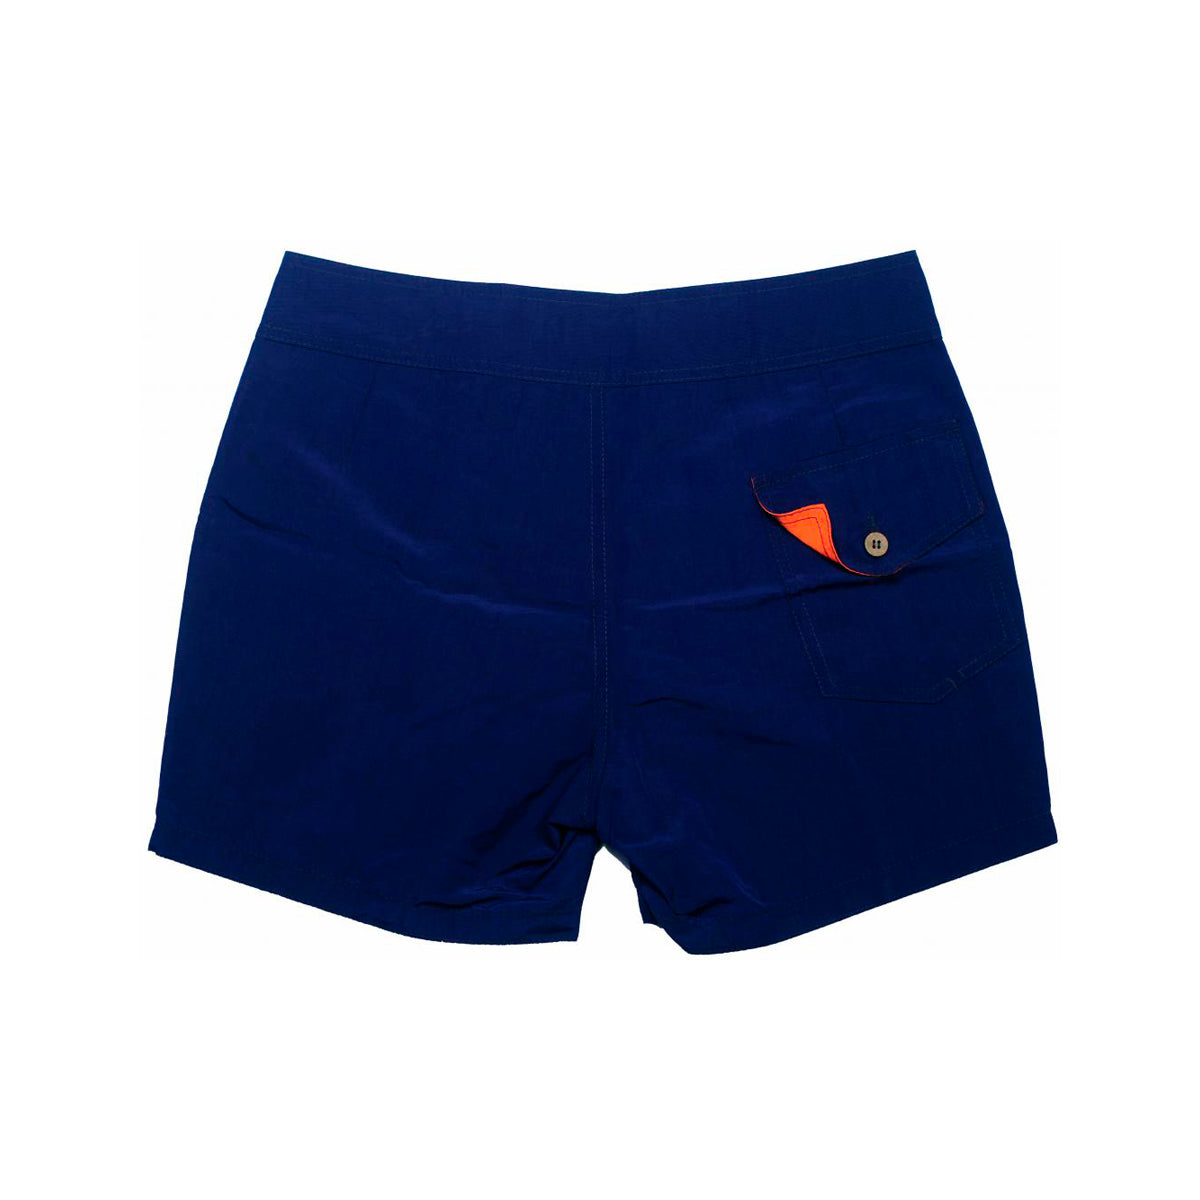 RDOsurf Monochrome Navy Trunk